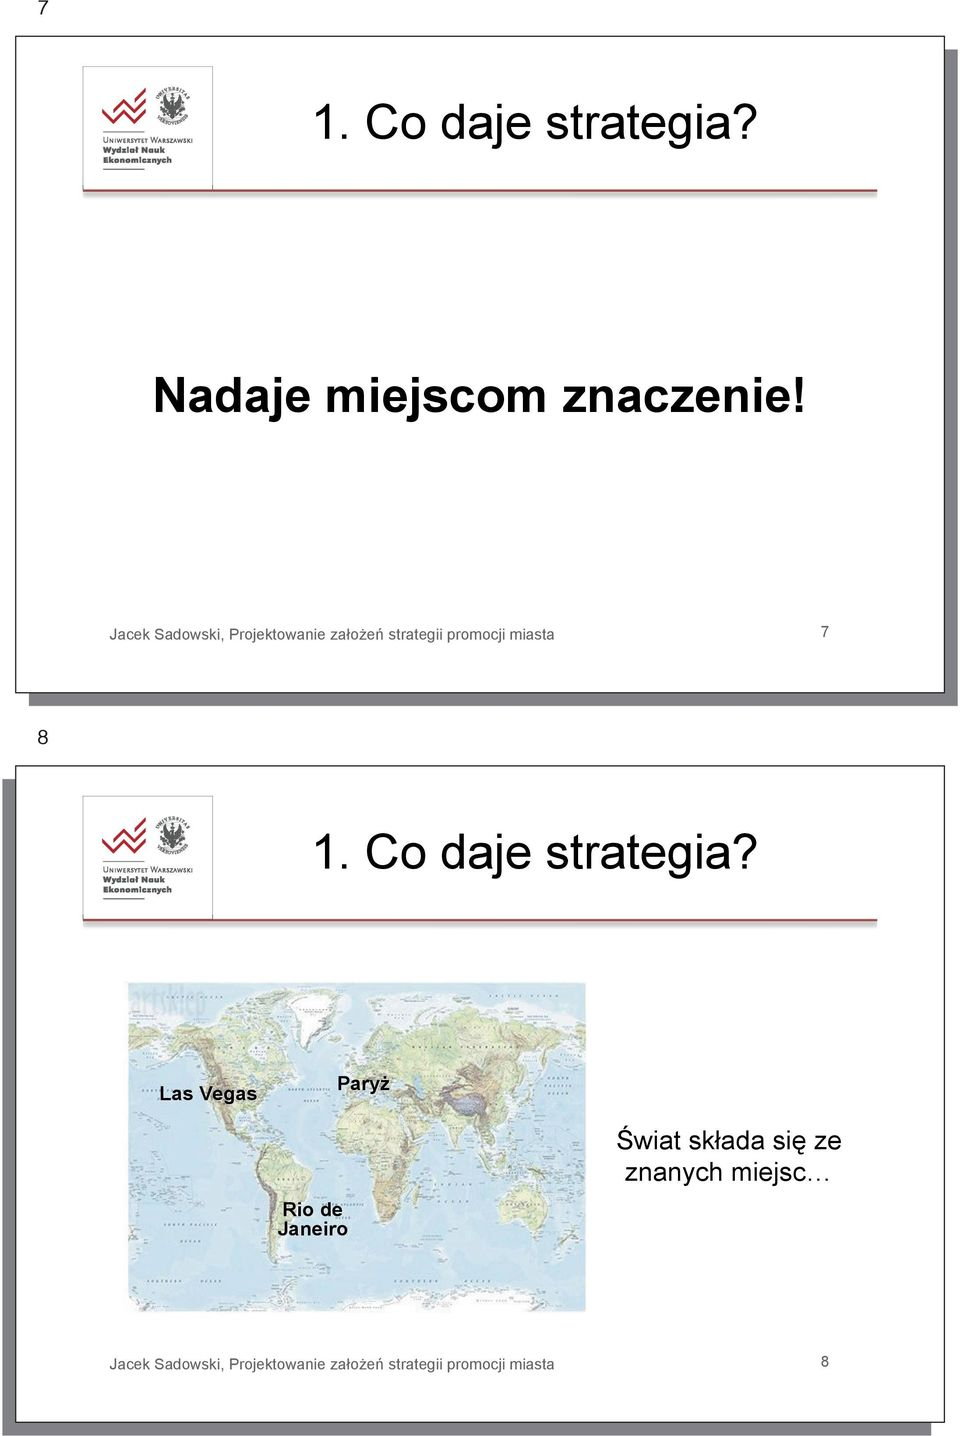 Co daje strategia?